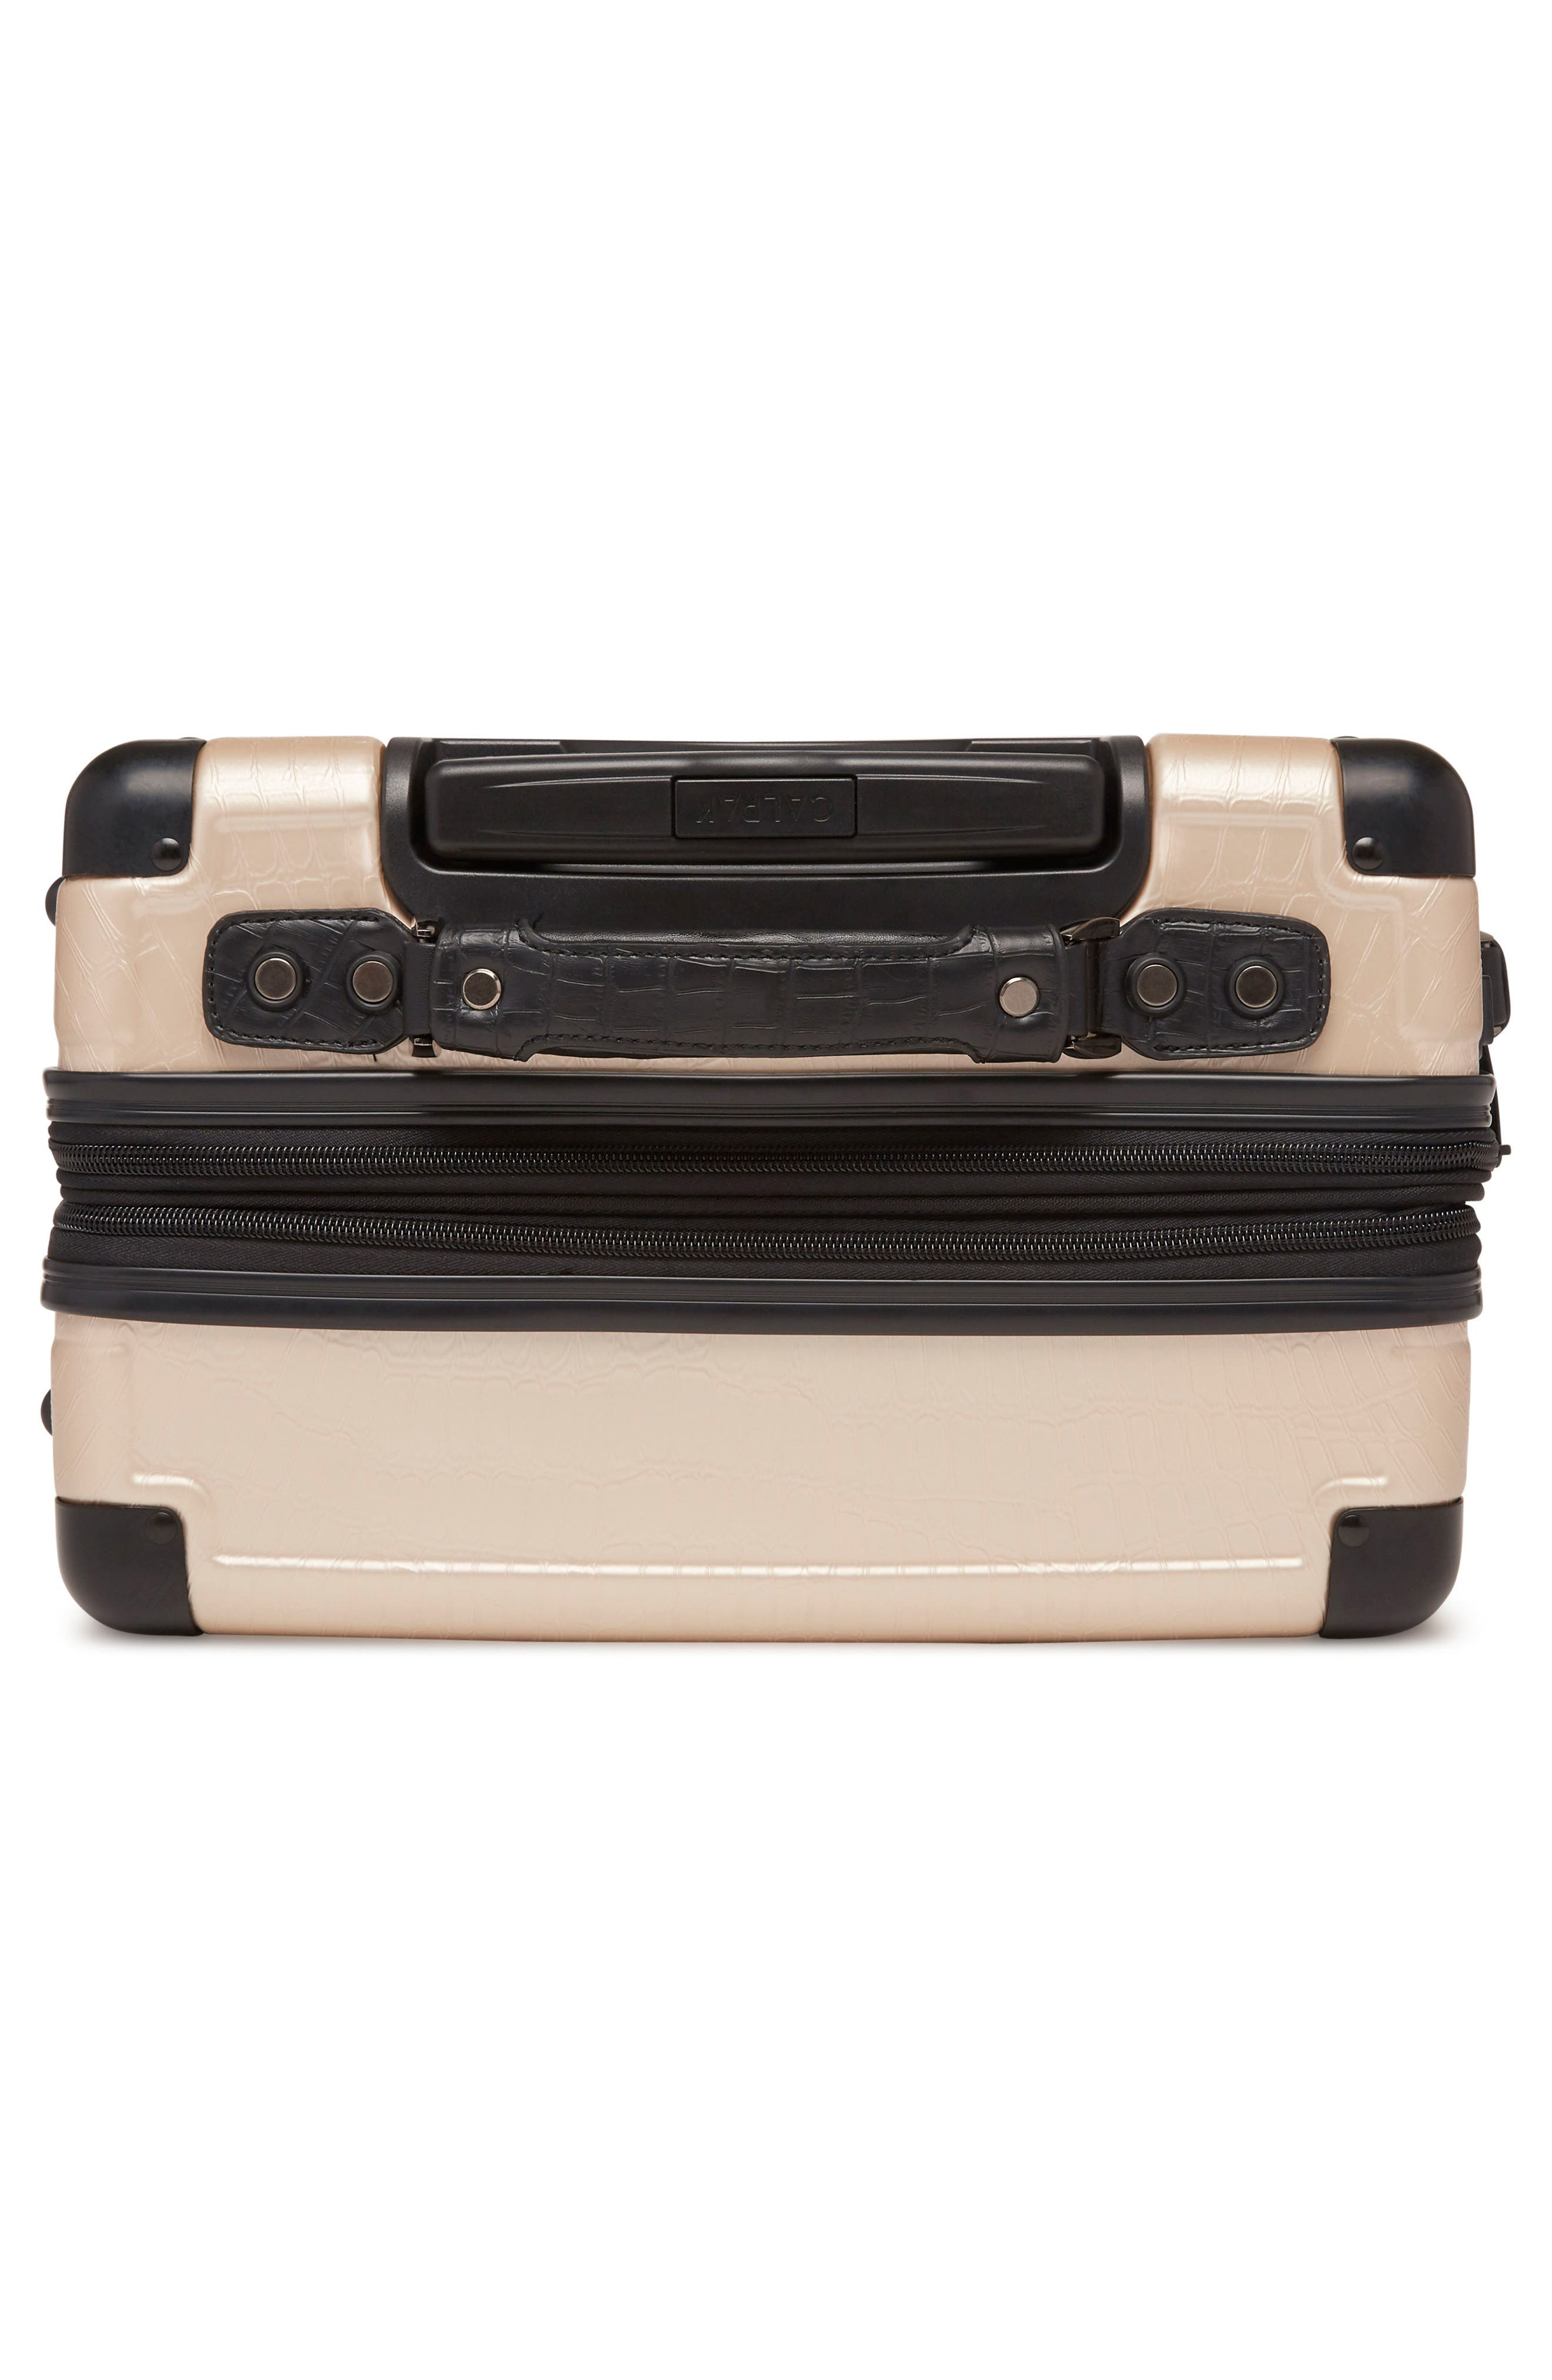 20-Inch & 28-Inch Trunk Rolling Luggage Set,                             Alternate thumbnail 7, color,                             Nude